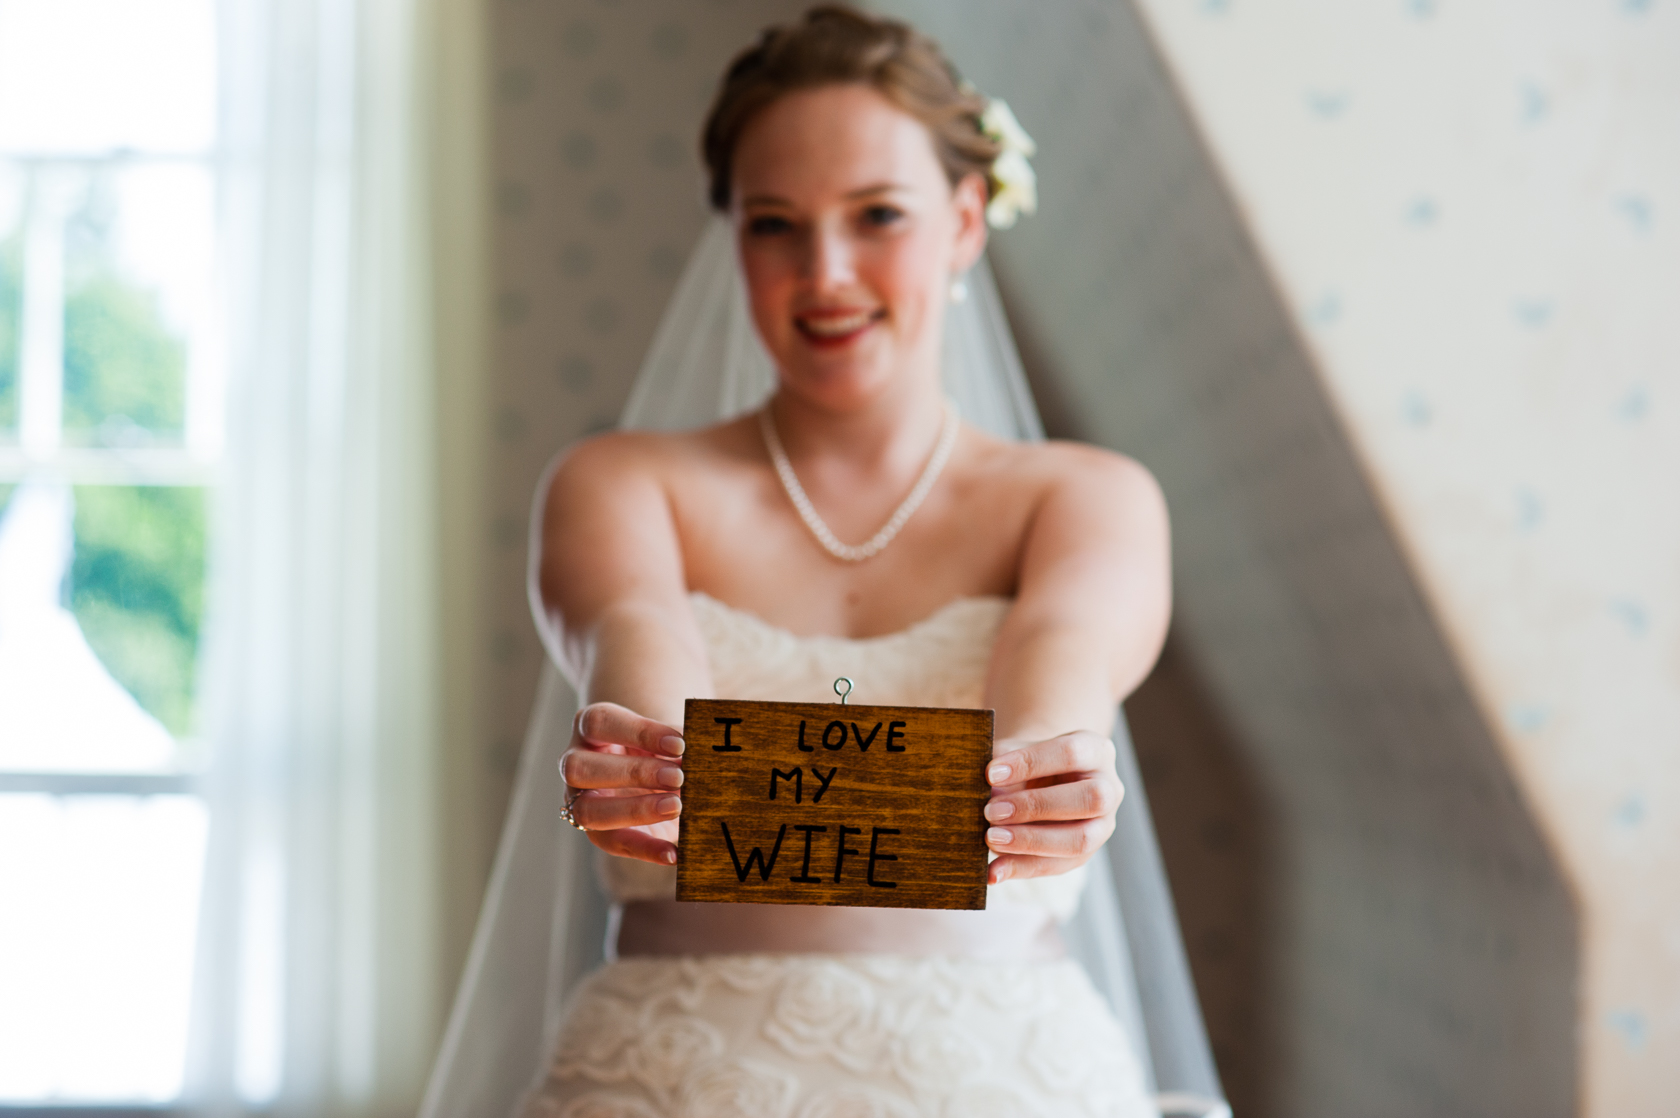 beautiful bride holding up wedding day present from groom